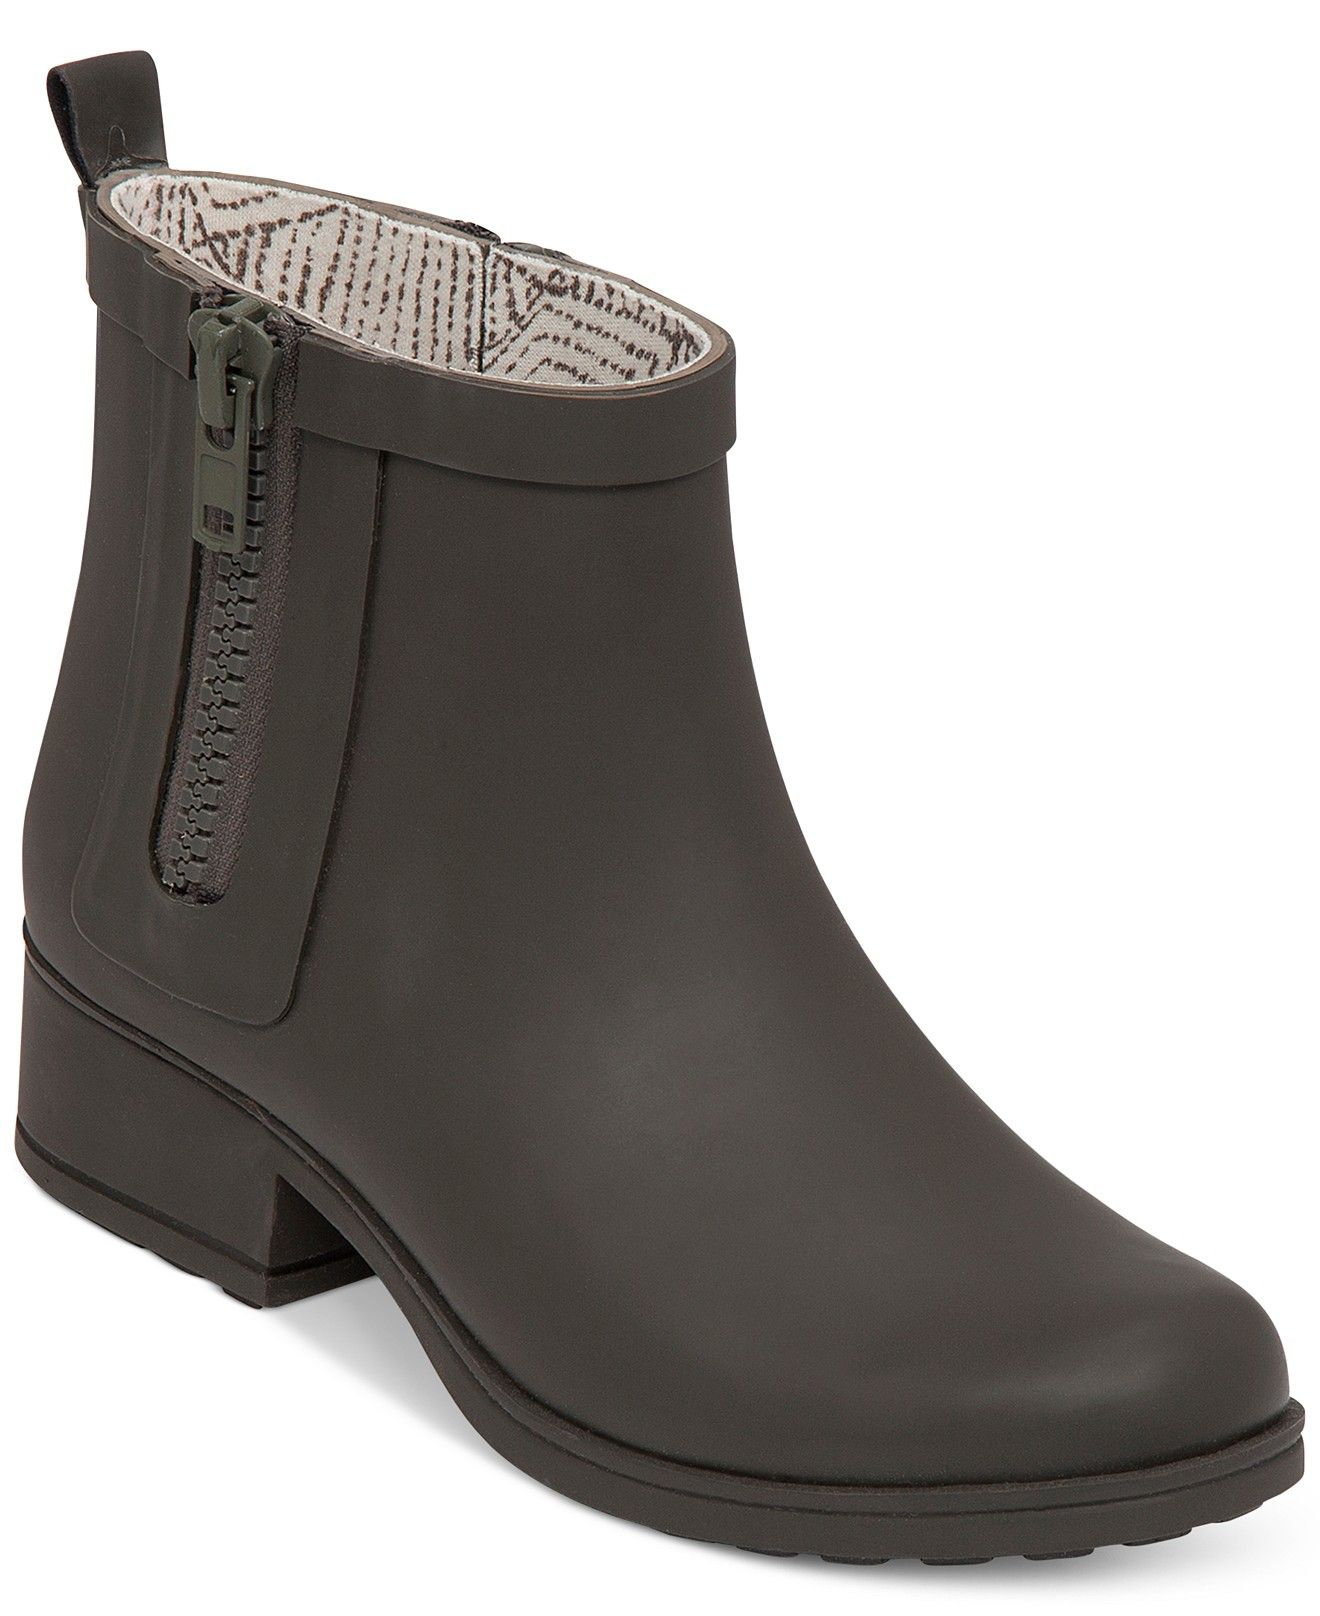 57b59dd2e7b Lucky Brand Women s Rhandi Rain Booties - Boots - Shoes - Macy s ...